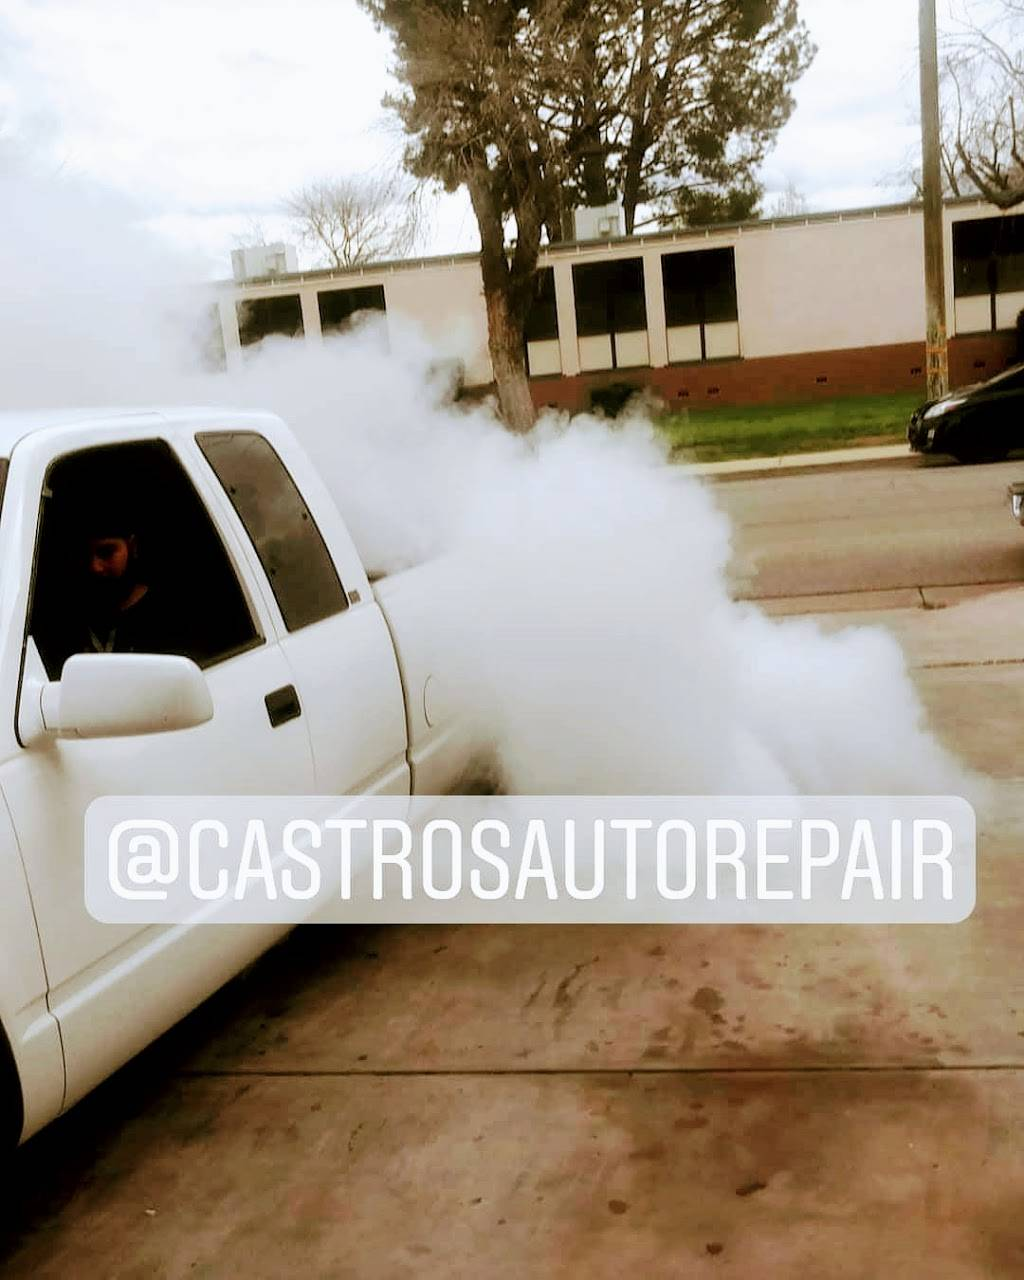 Castros Auto Diesel & Tire Repair - car repair  | Photo 7 of 10 | Address: 3910 S Chester Ave, Bakersfield, CA 93307, USA | Phone: (661) 855-0203